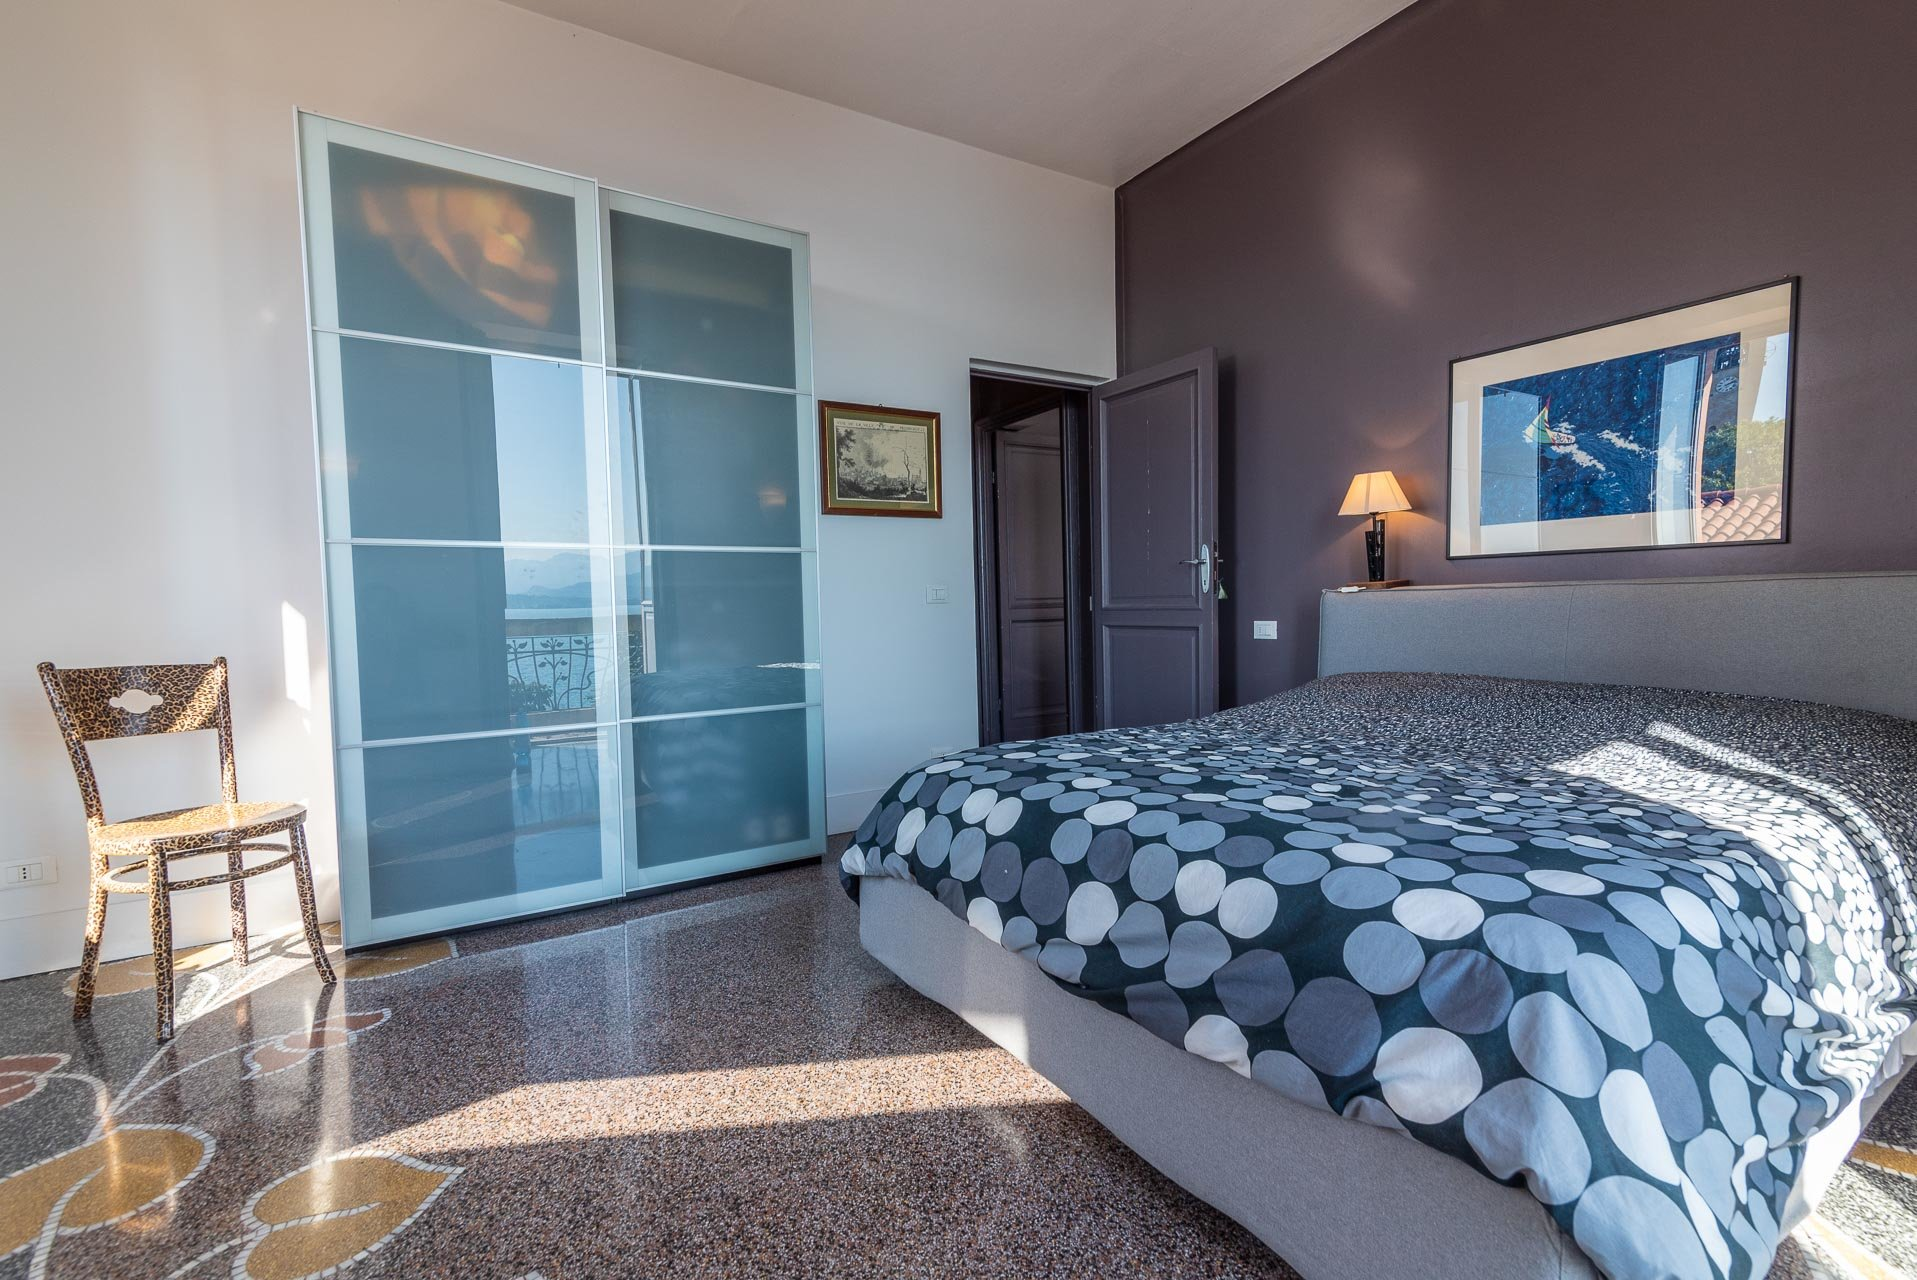 Lesa, apartment for sale on the lakefront - bedroom